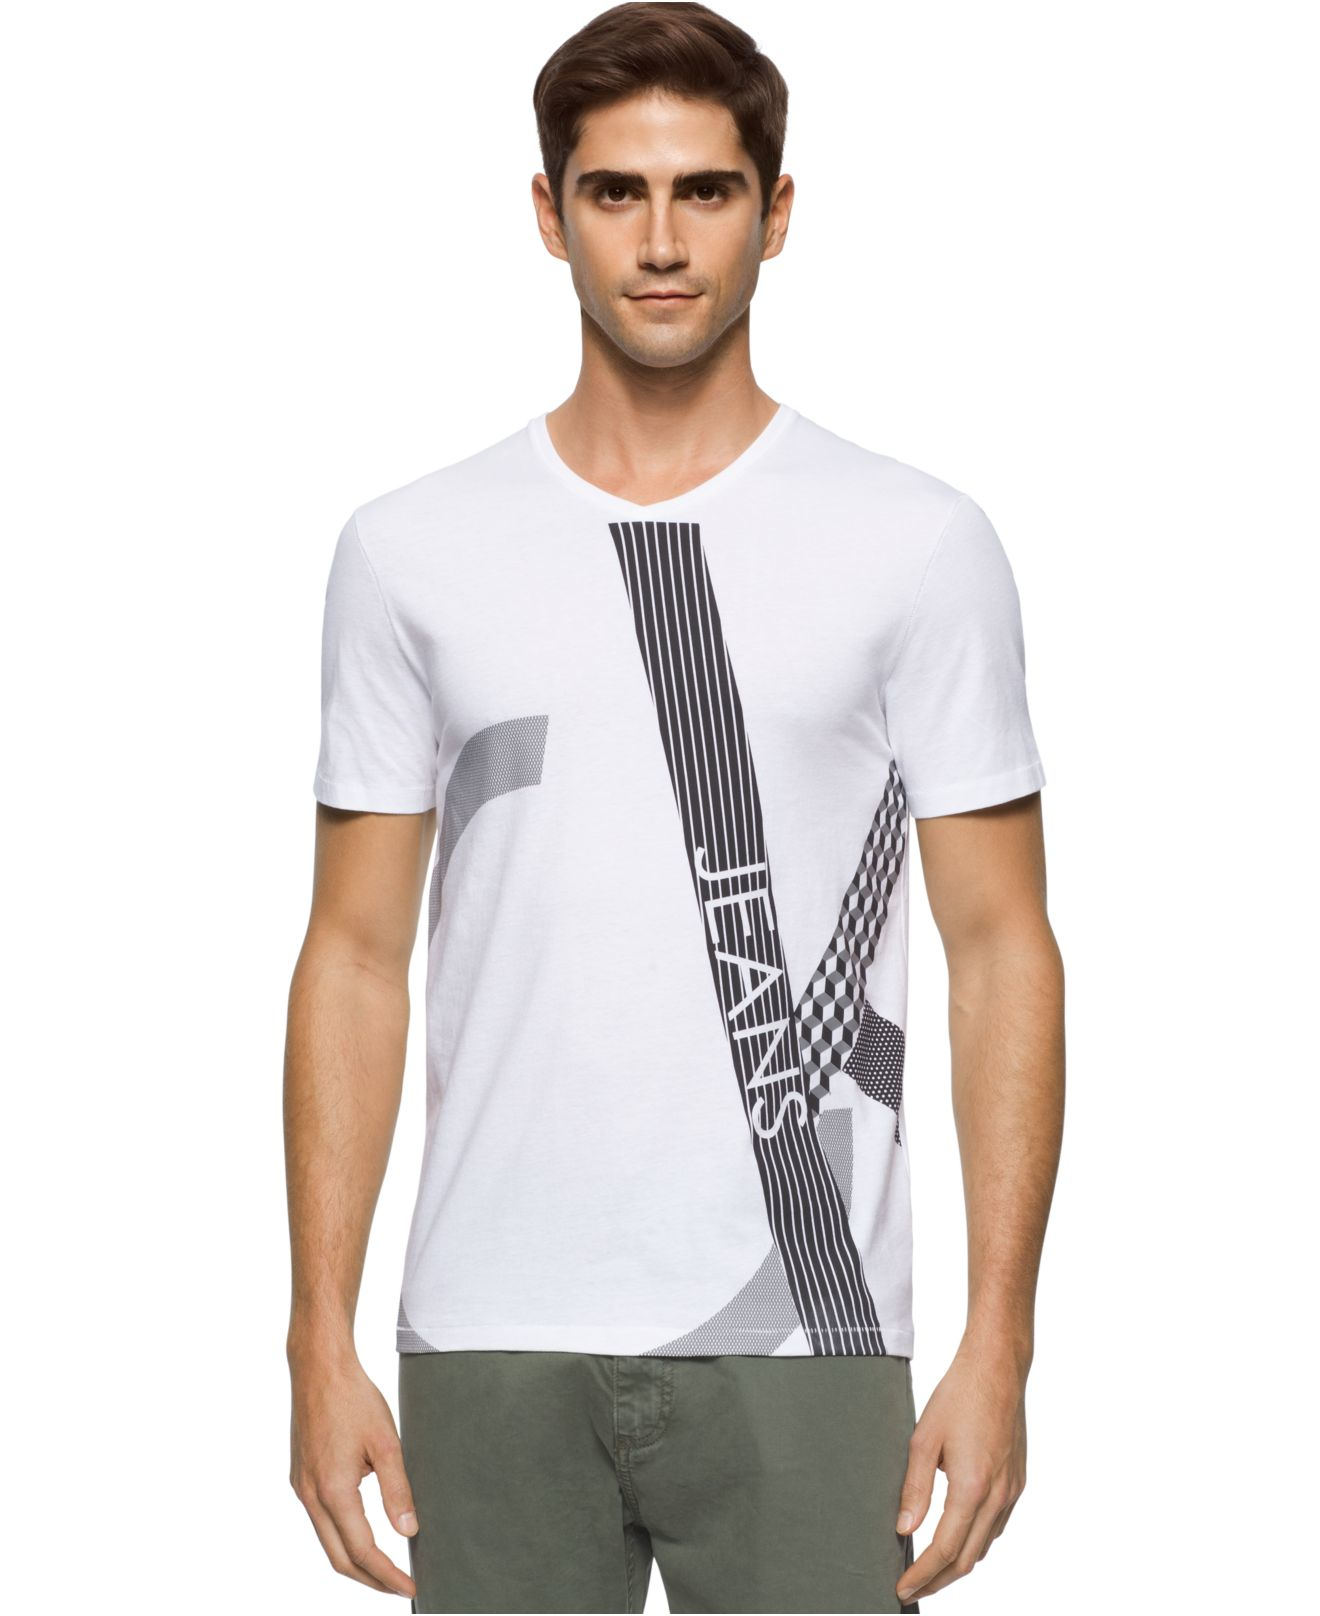 lyst calvin klein jeans men 39 s texture play graphic print logo v neck t shirt in white for men. Black Bedroom Furniture Sets. Home Design Ideas